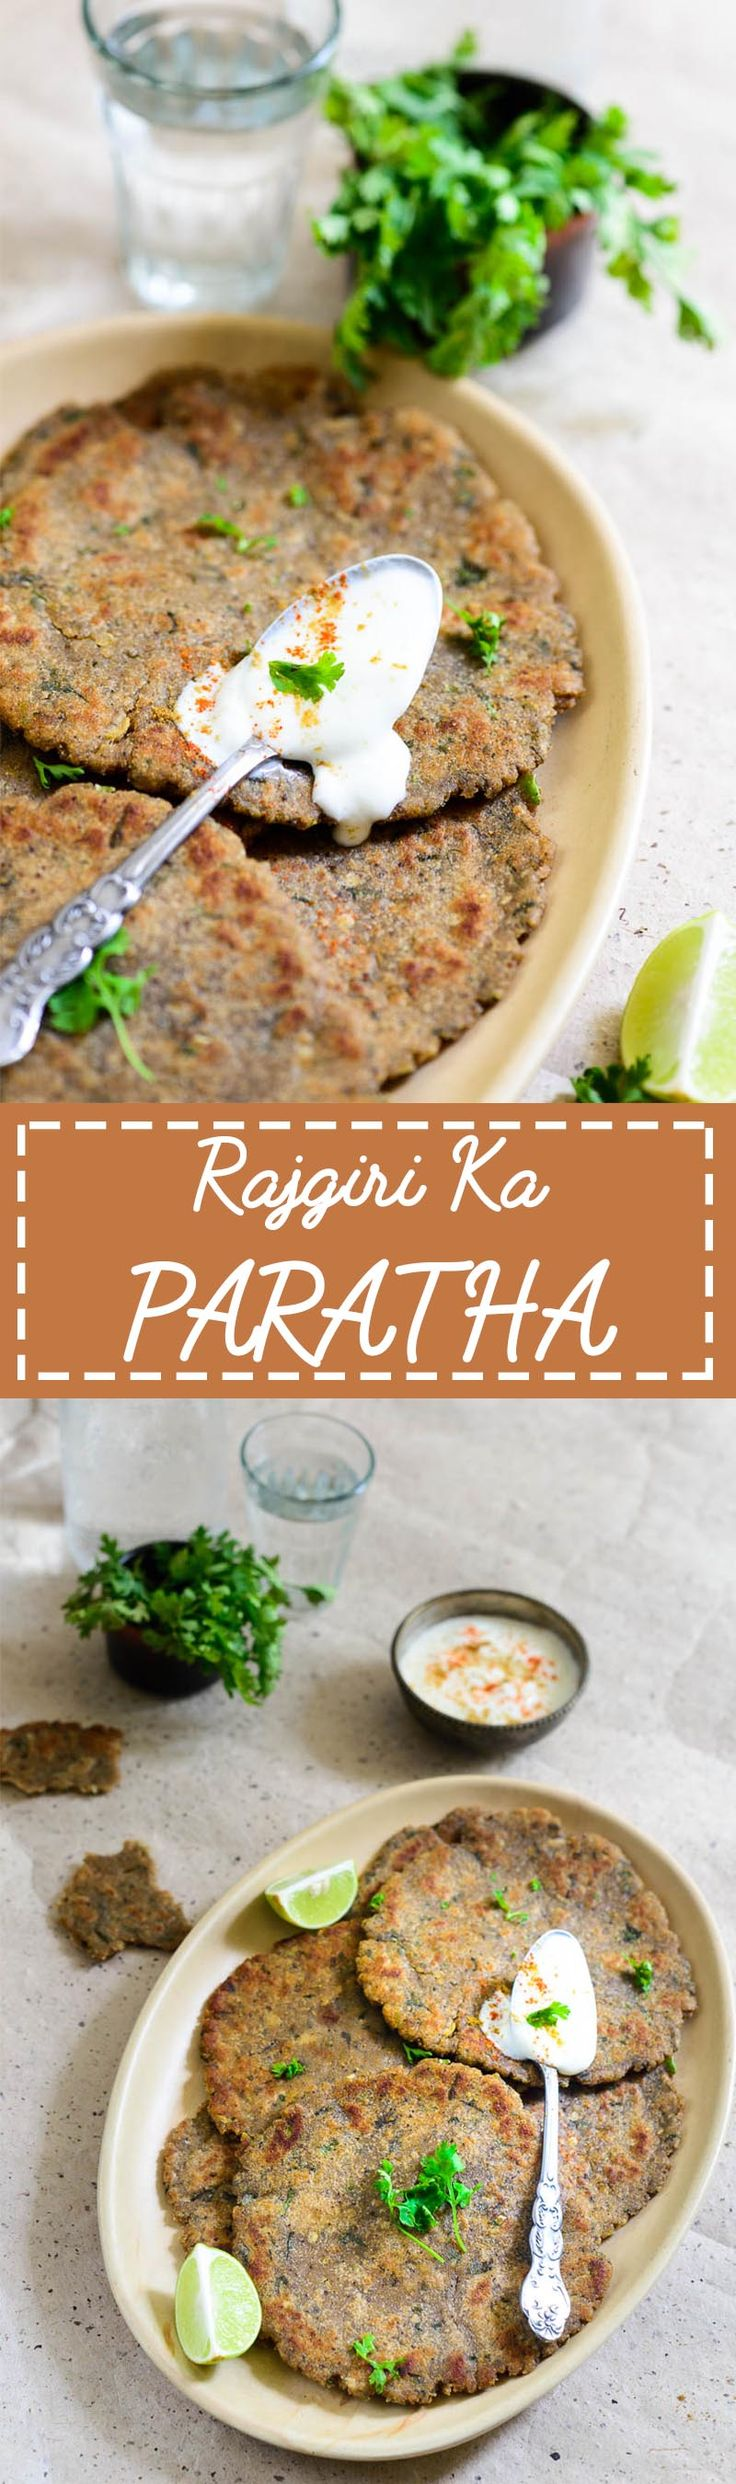 Rajgiri Ka Paratha. Gluten free flat bread made using Amaranth flour. this can be eaten as falahar for Indian vrat as well. Food photography and Styling by Neha Mathur.